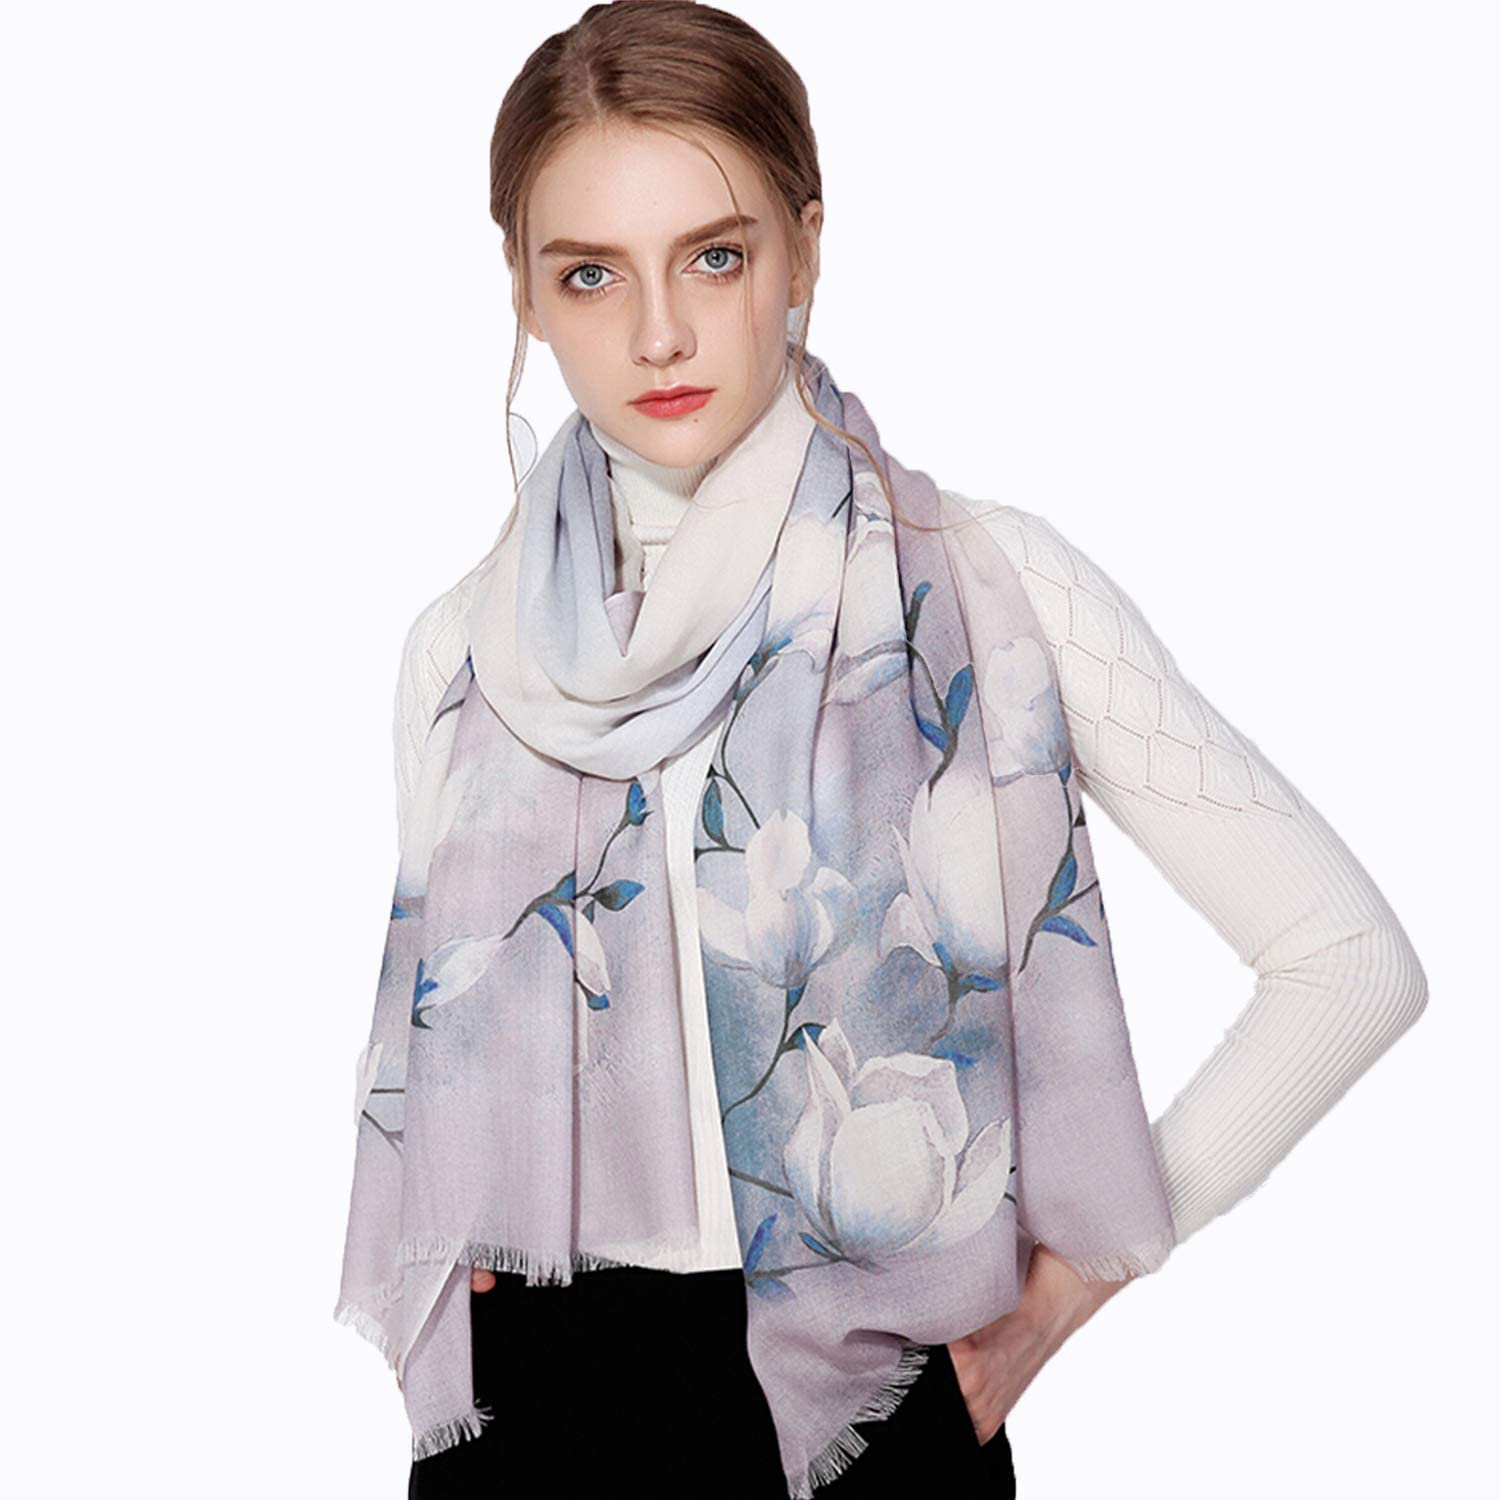 Wool Scarf for Women,Stylish Long Warm Printed Wrap Shawl Ideal for Ladies Autumn Winter Outdoor Activities Use